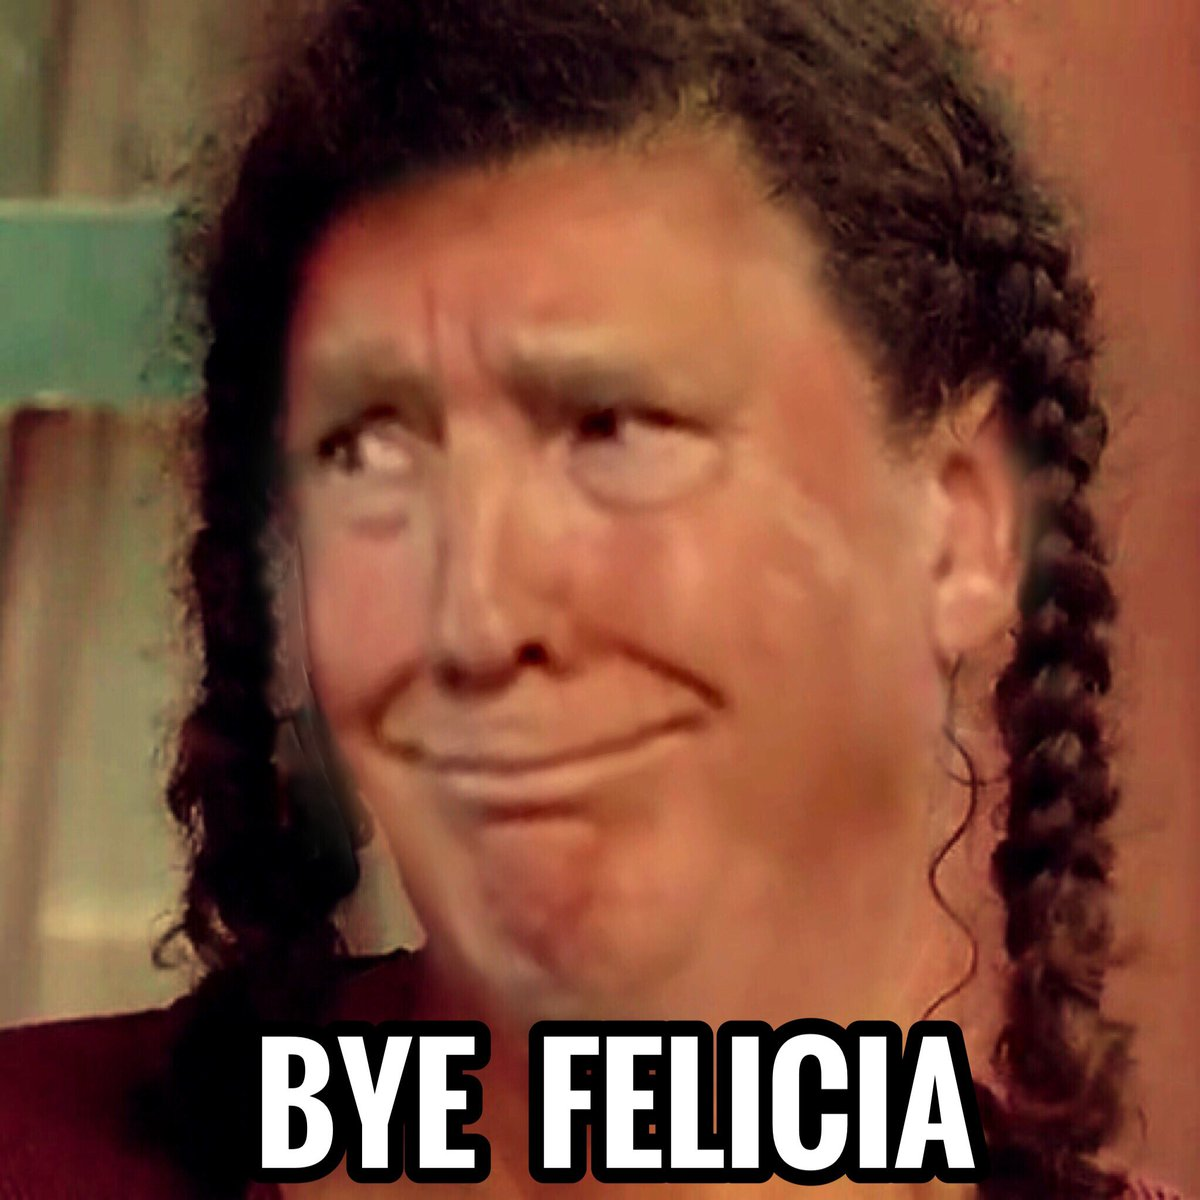 #ByeFelicia